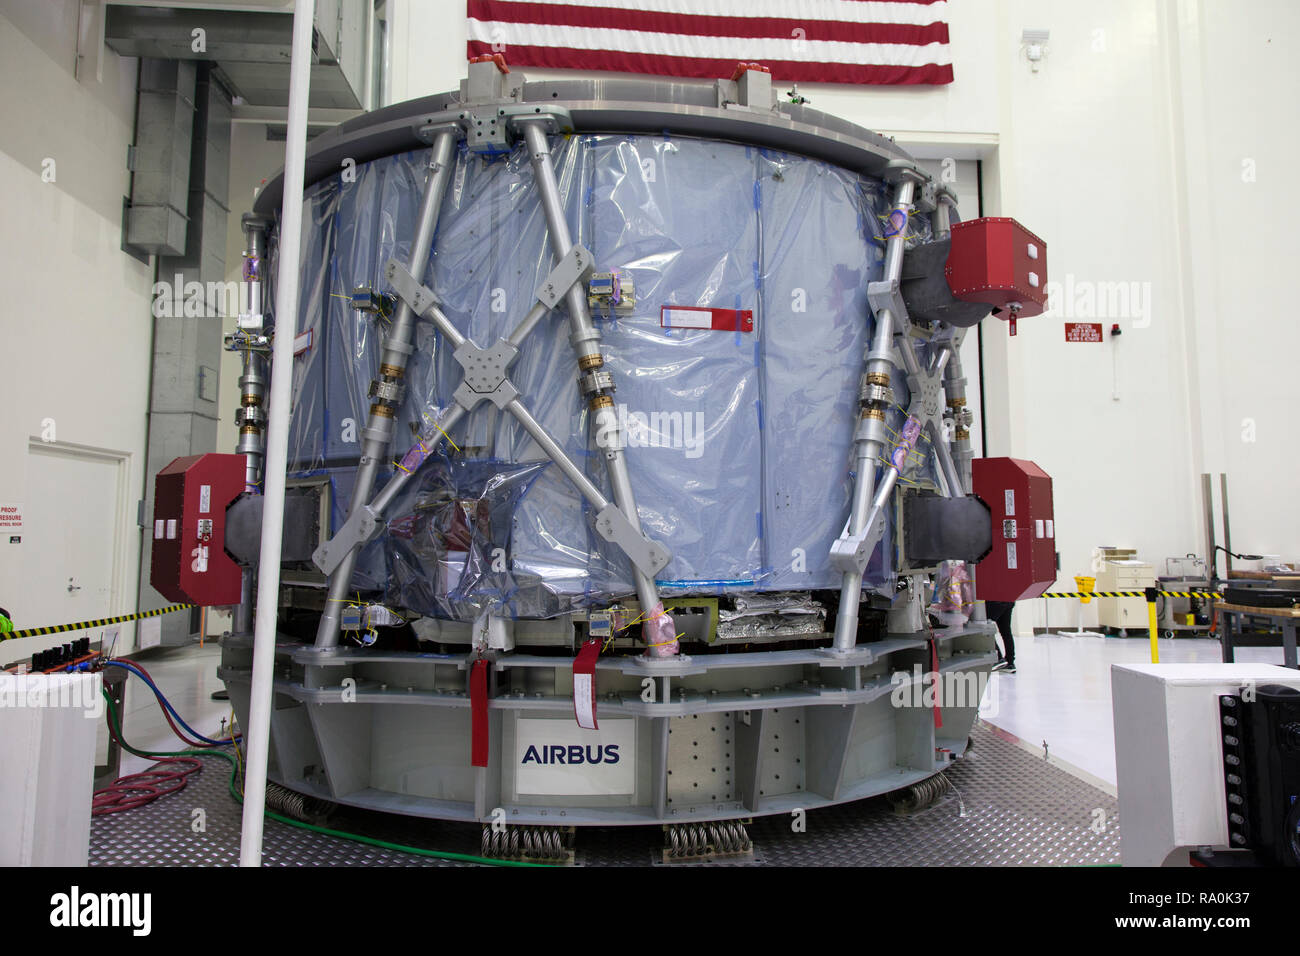 The European Service Module is unpacked inside the Neil Armstrong Operations and Checkout Building high bay at the Kennedy Space Center November 7, 2018 in Cape Canaveral, Florida. The ESM is provided by the European Space Agency, and built by Airbus Defence and Space. It will supply the main propulsion system and power to the Orion spacecraft for Exploration Mission-1, a mission around the Moon. The ESM also will house air and water for astronauts on future missions. EM-1 will be an uncrewed flight test that will provide a foundation for human deep space exploration to destinations beyond Ear - Stock Image